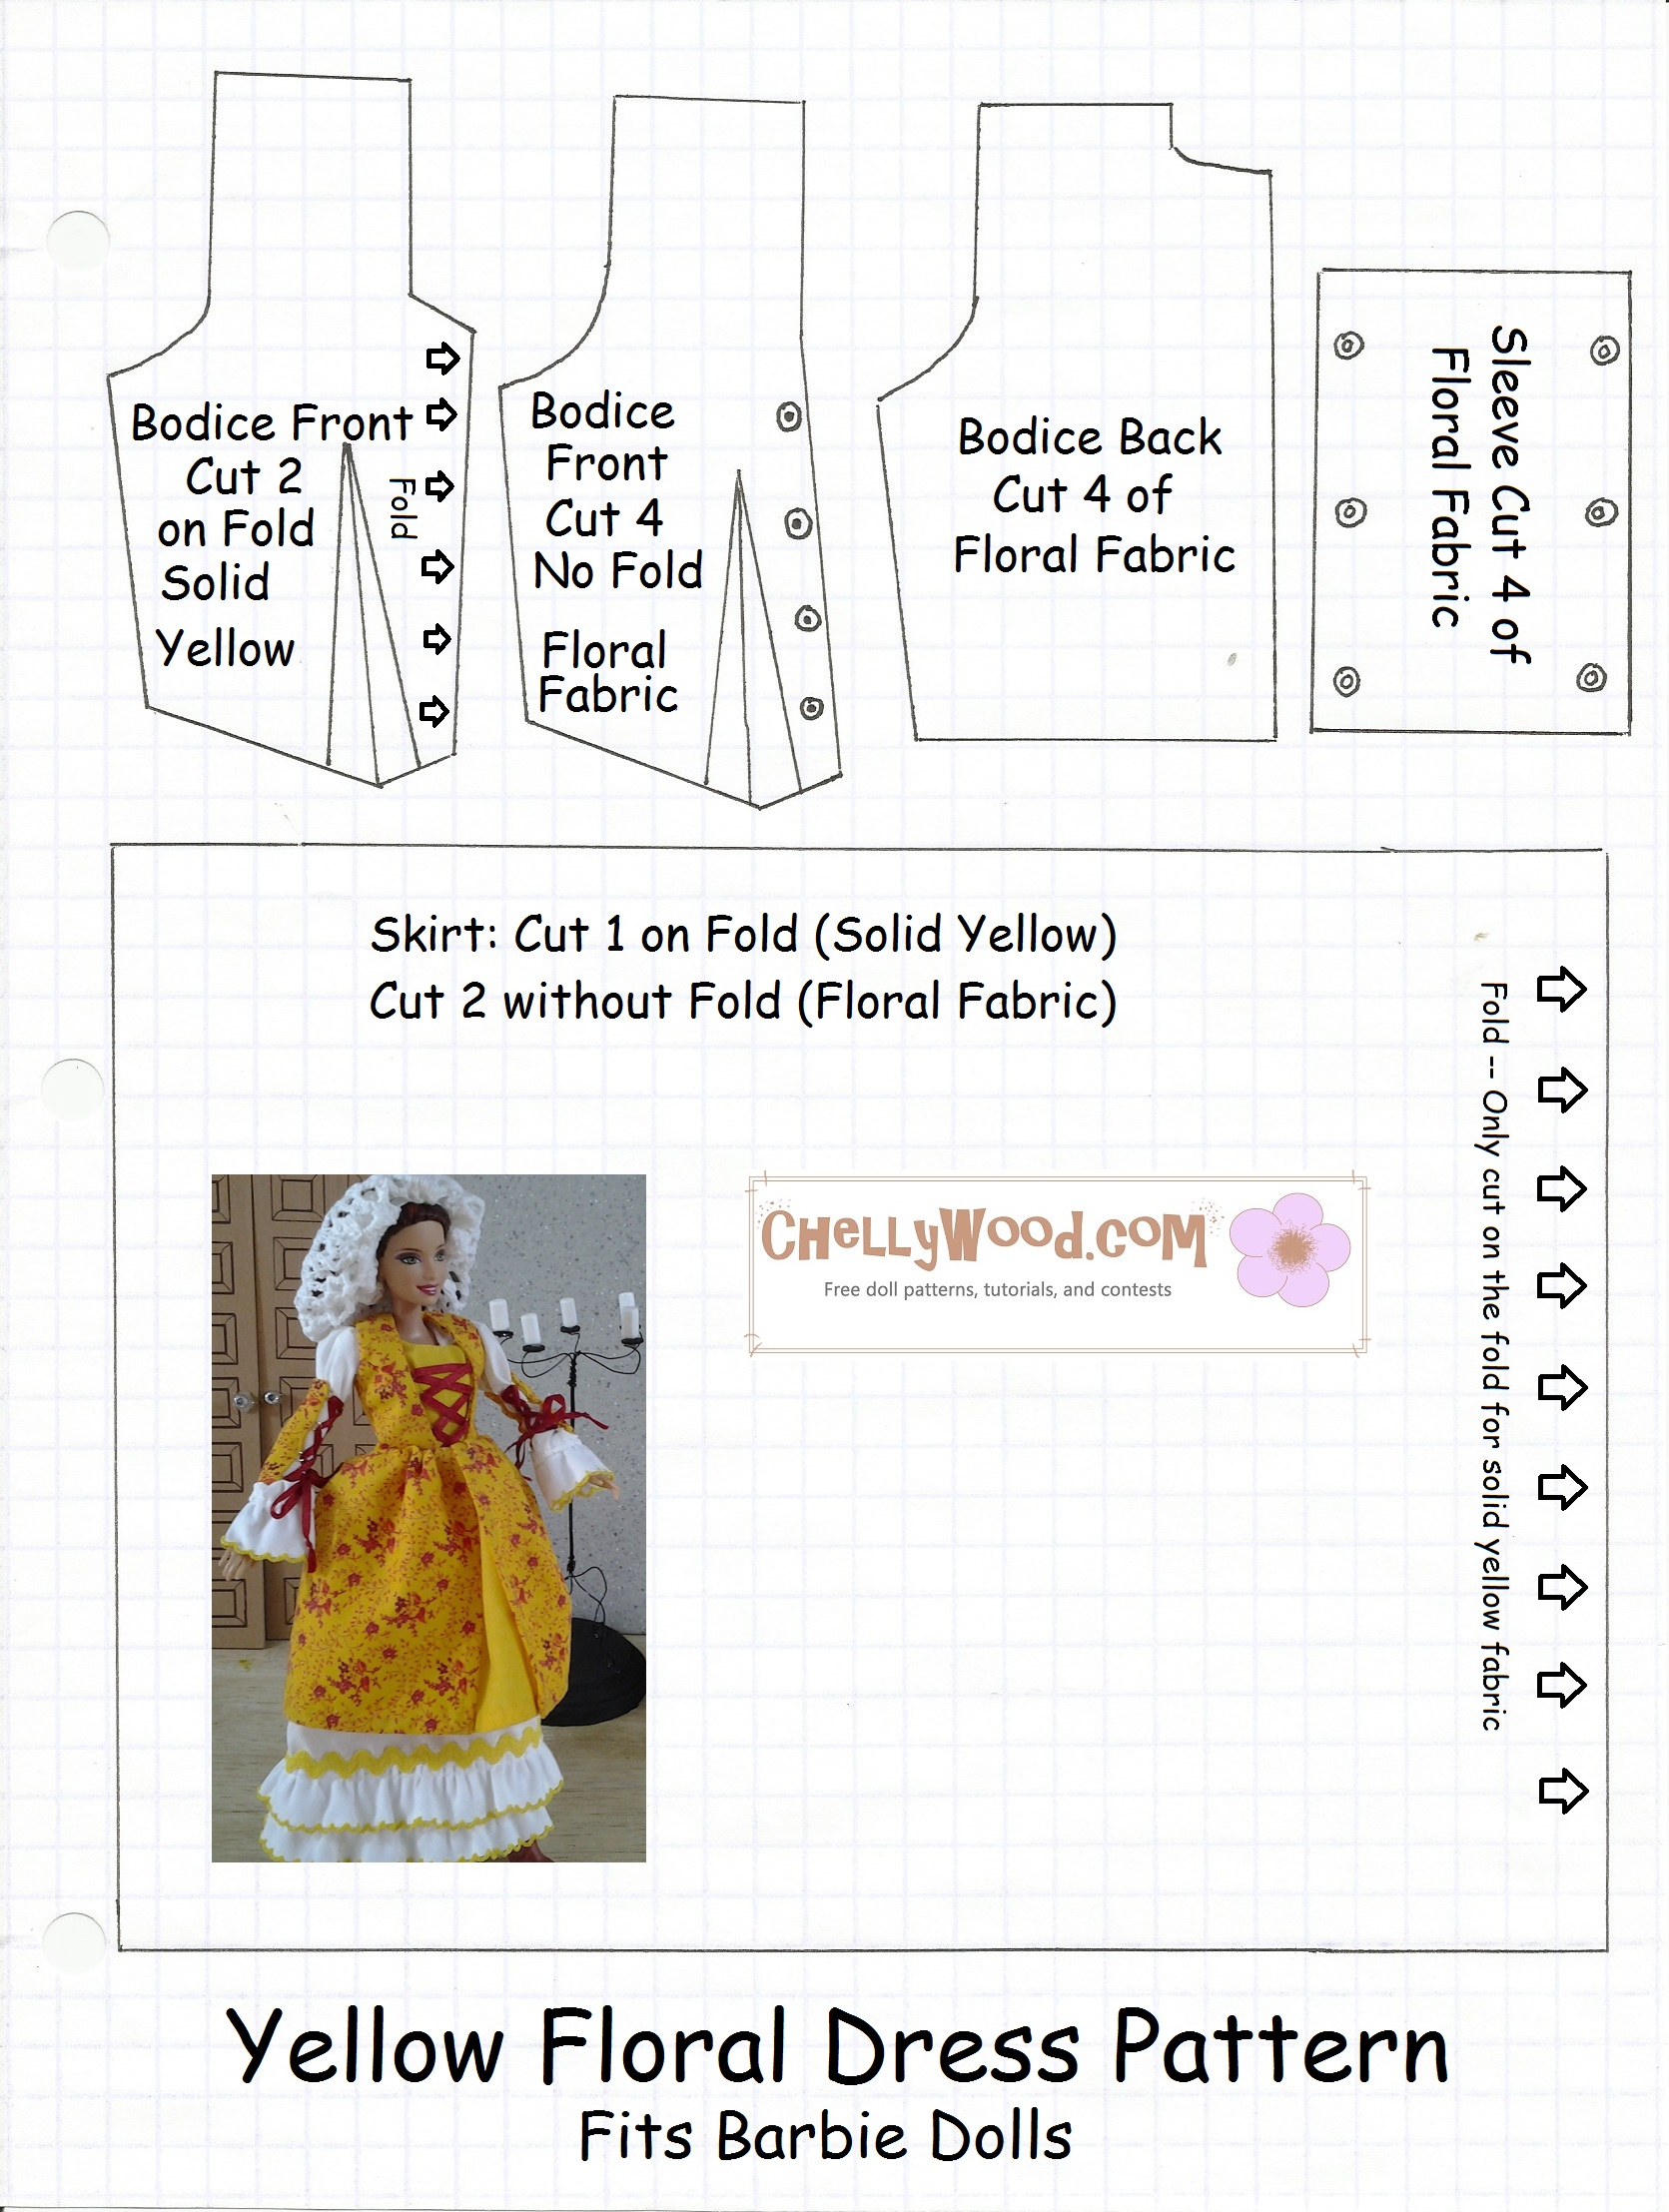 FREE Printable Barbie Doll Clothes Patterns |